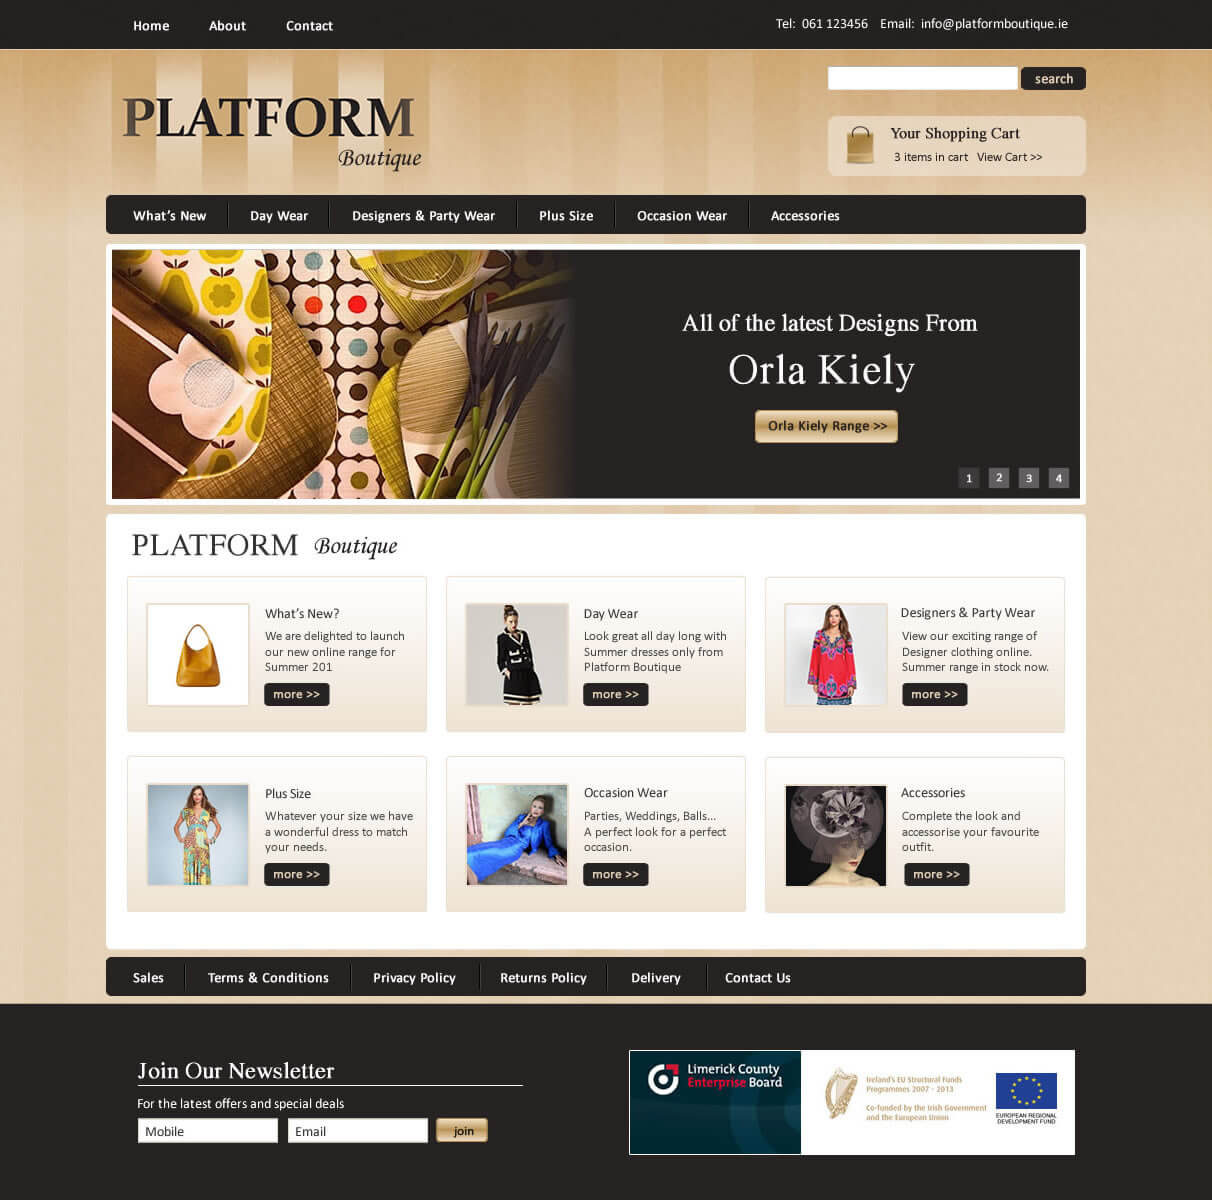 e commerce website Best new ecommerce website design some of the ecommerce sites below are brand new, online launches for the companies other of these sites are net new launches after a tedious experience with former platforms.